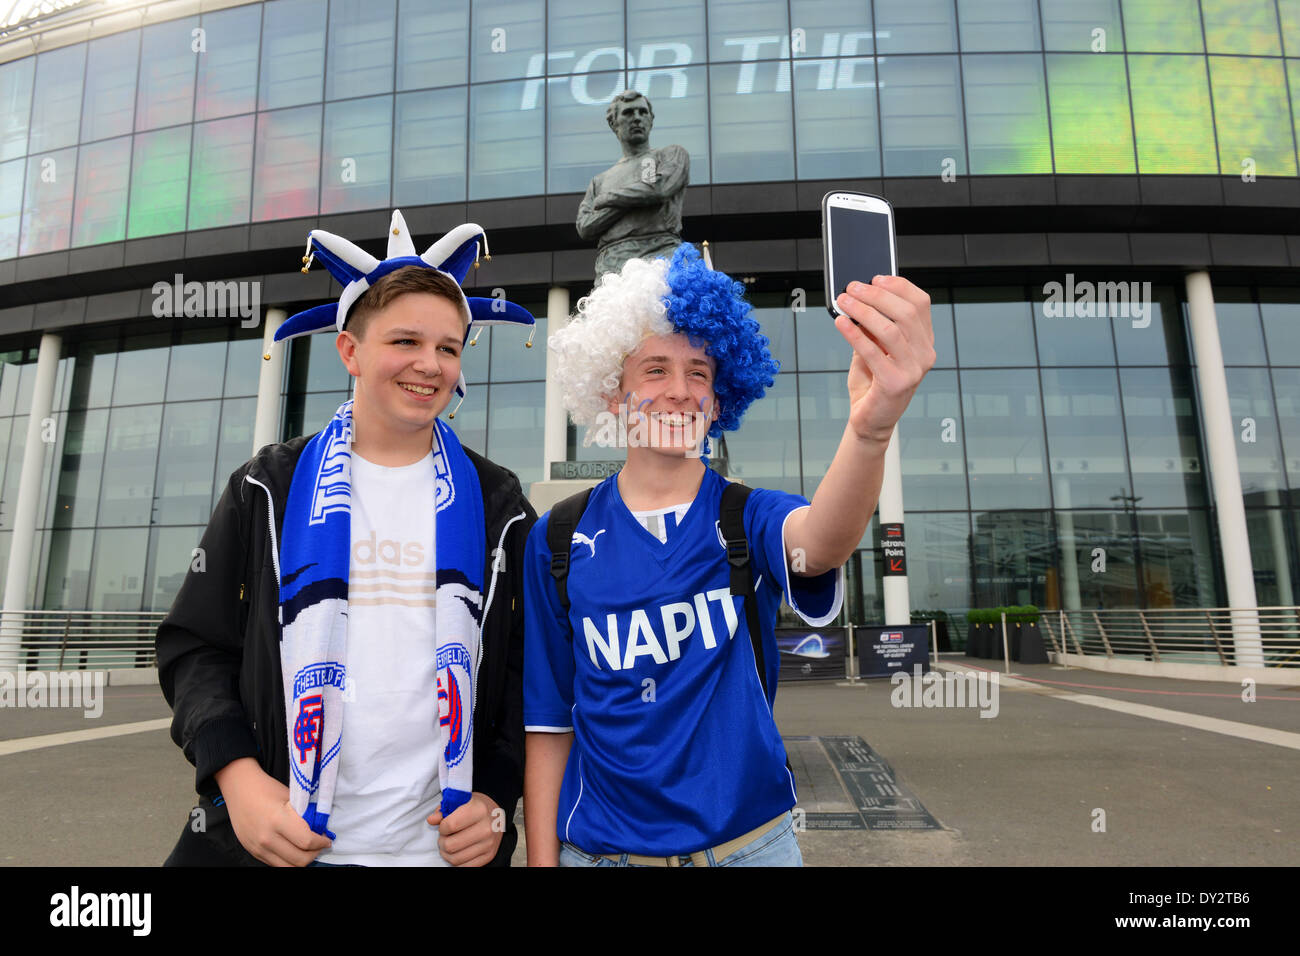 Chesterfield football fans supporters taking photo selfie outside Wembley Stadium Uk - Stock Image